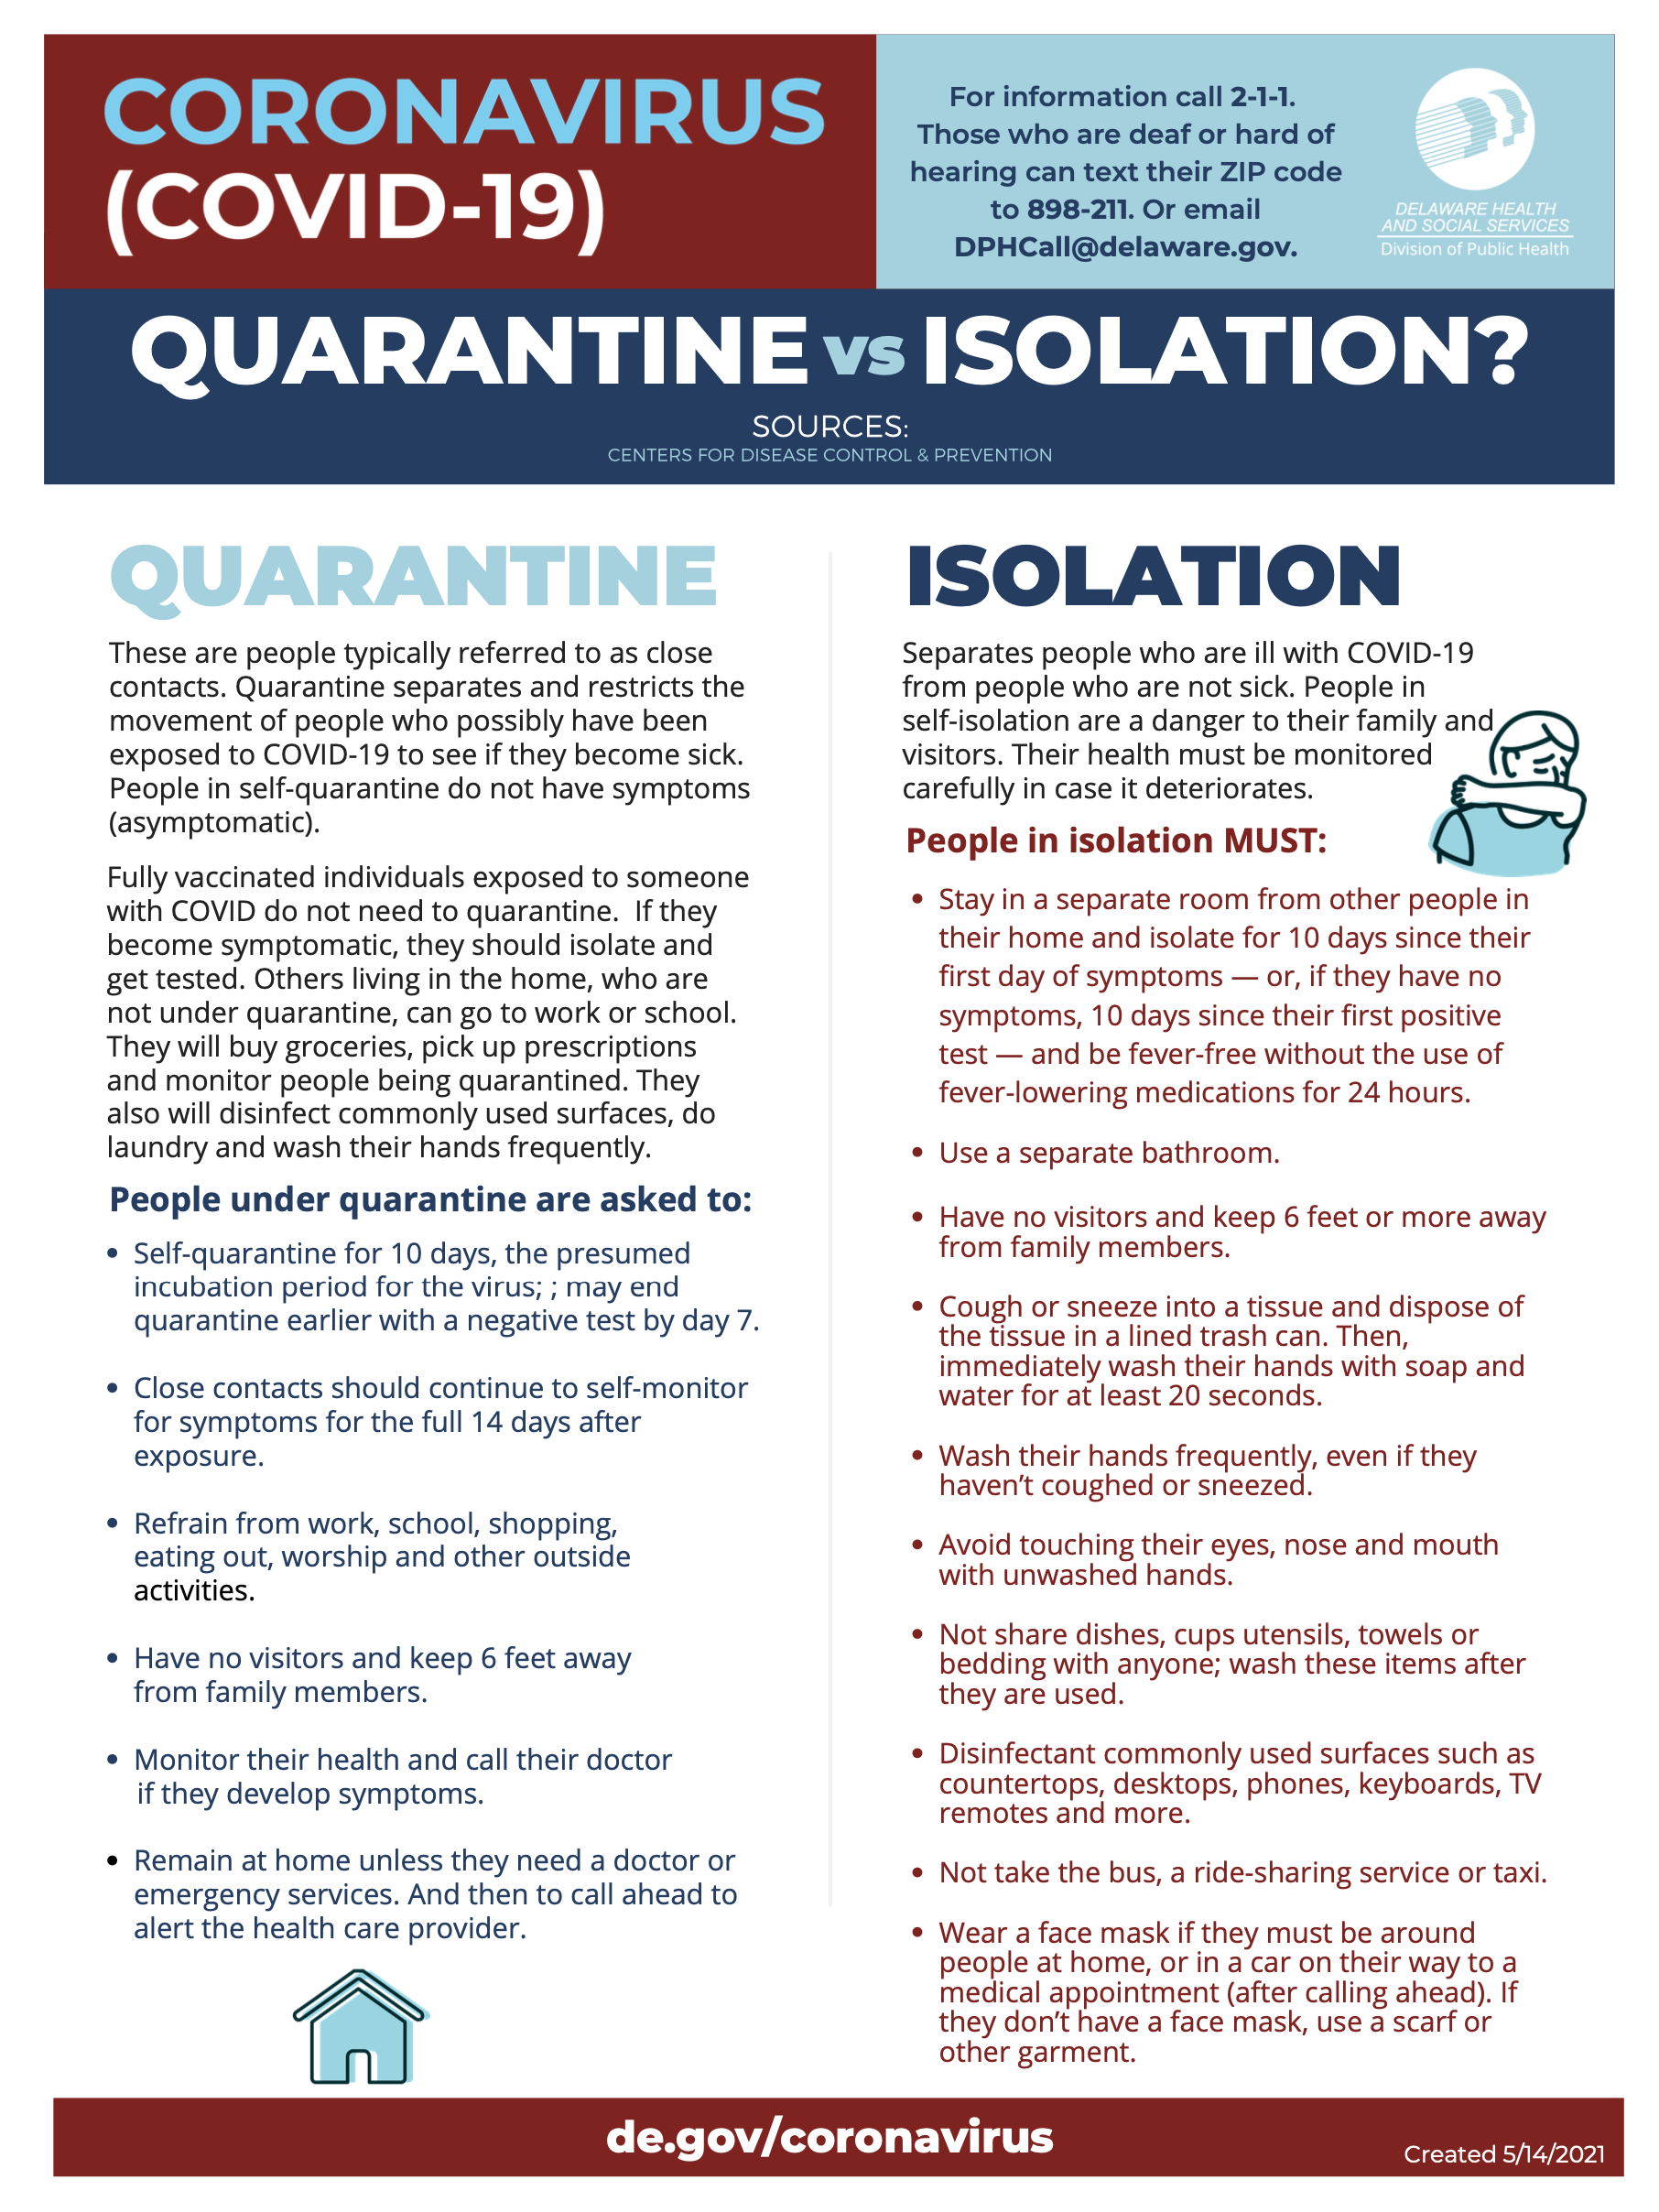 A document outlining the differences between quarantine and isolation.